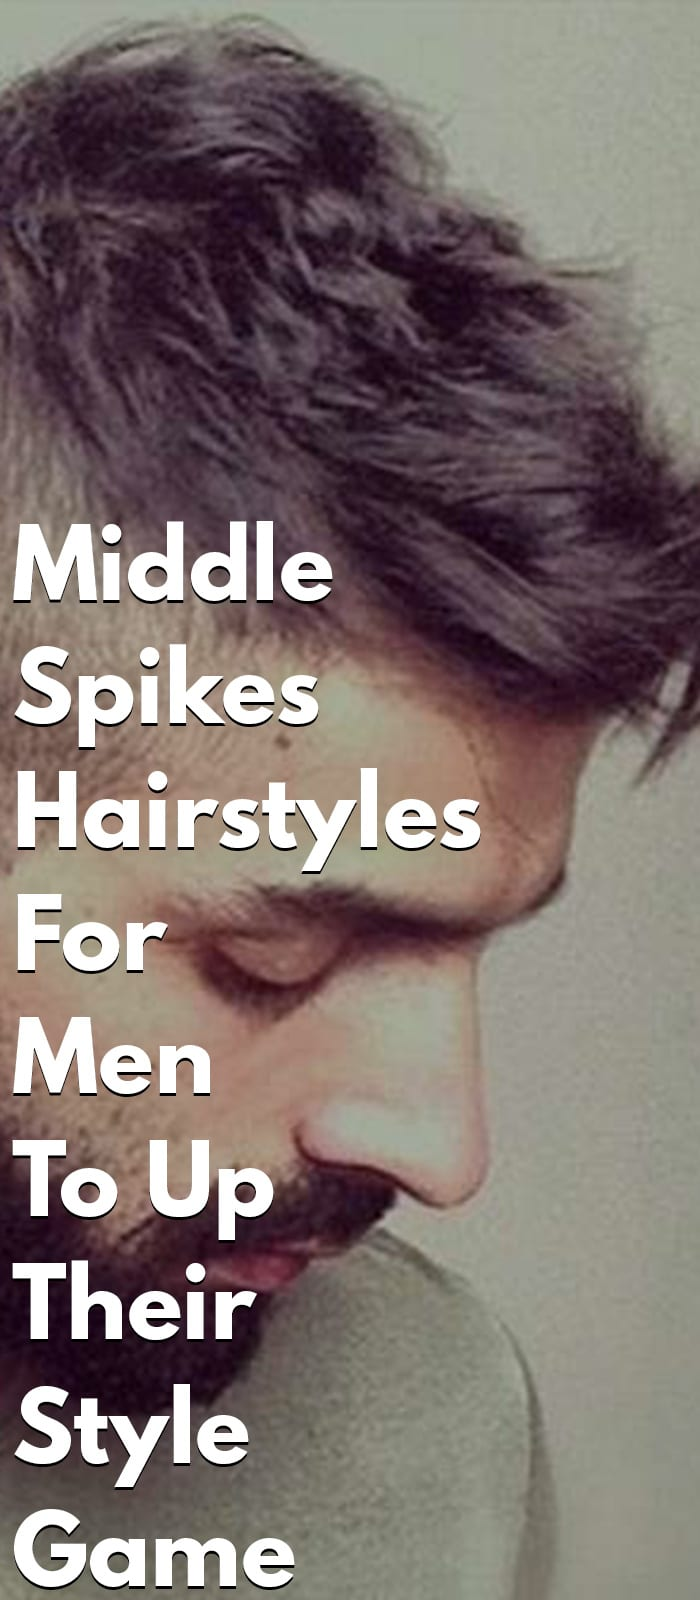 Middle Spikes Hairstyles For Men To Up Their Style Game